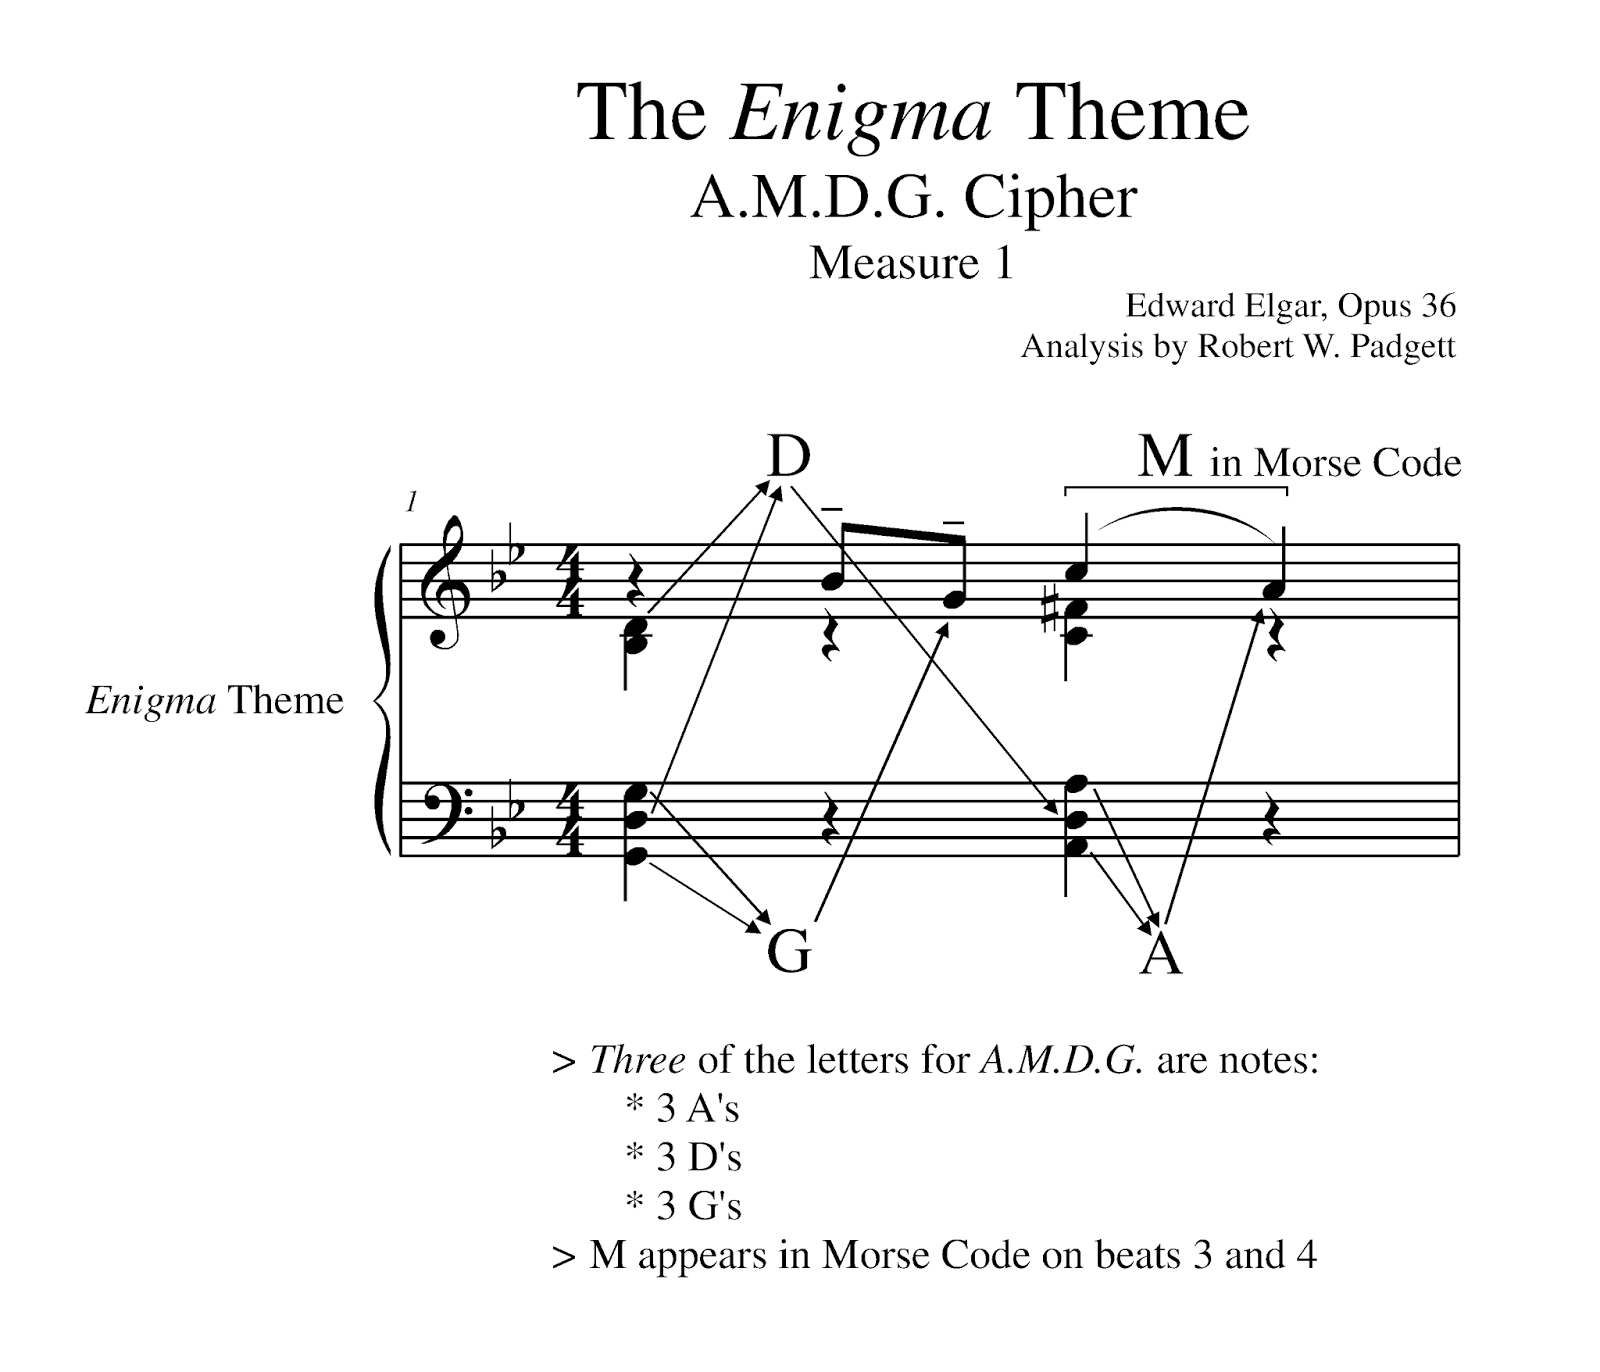 elgar s enigma theme unmasked elgar s unknown friend unmasked if one were going to encode a secret dedication it should be anticipated it would appear in the first measure although elgar omitted inscribing his